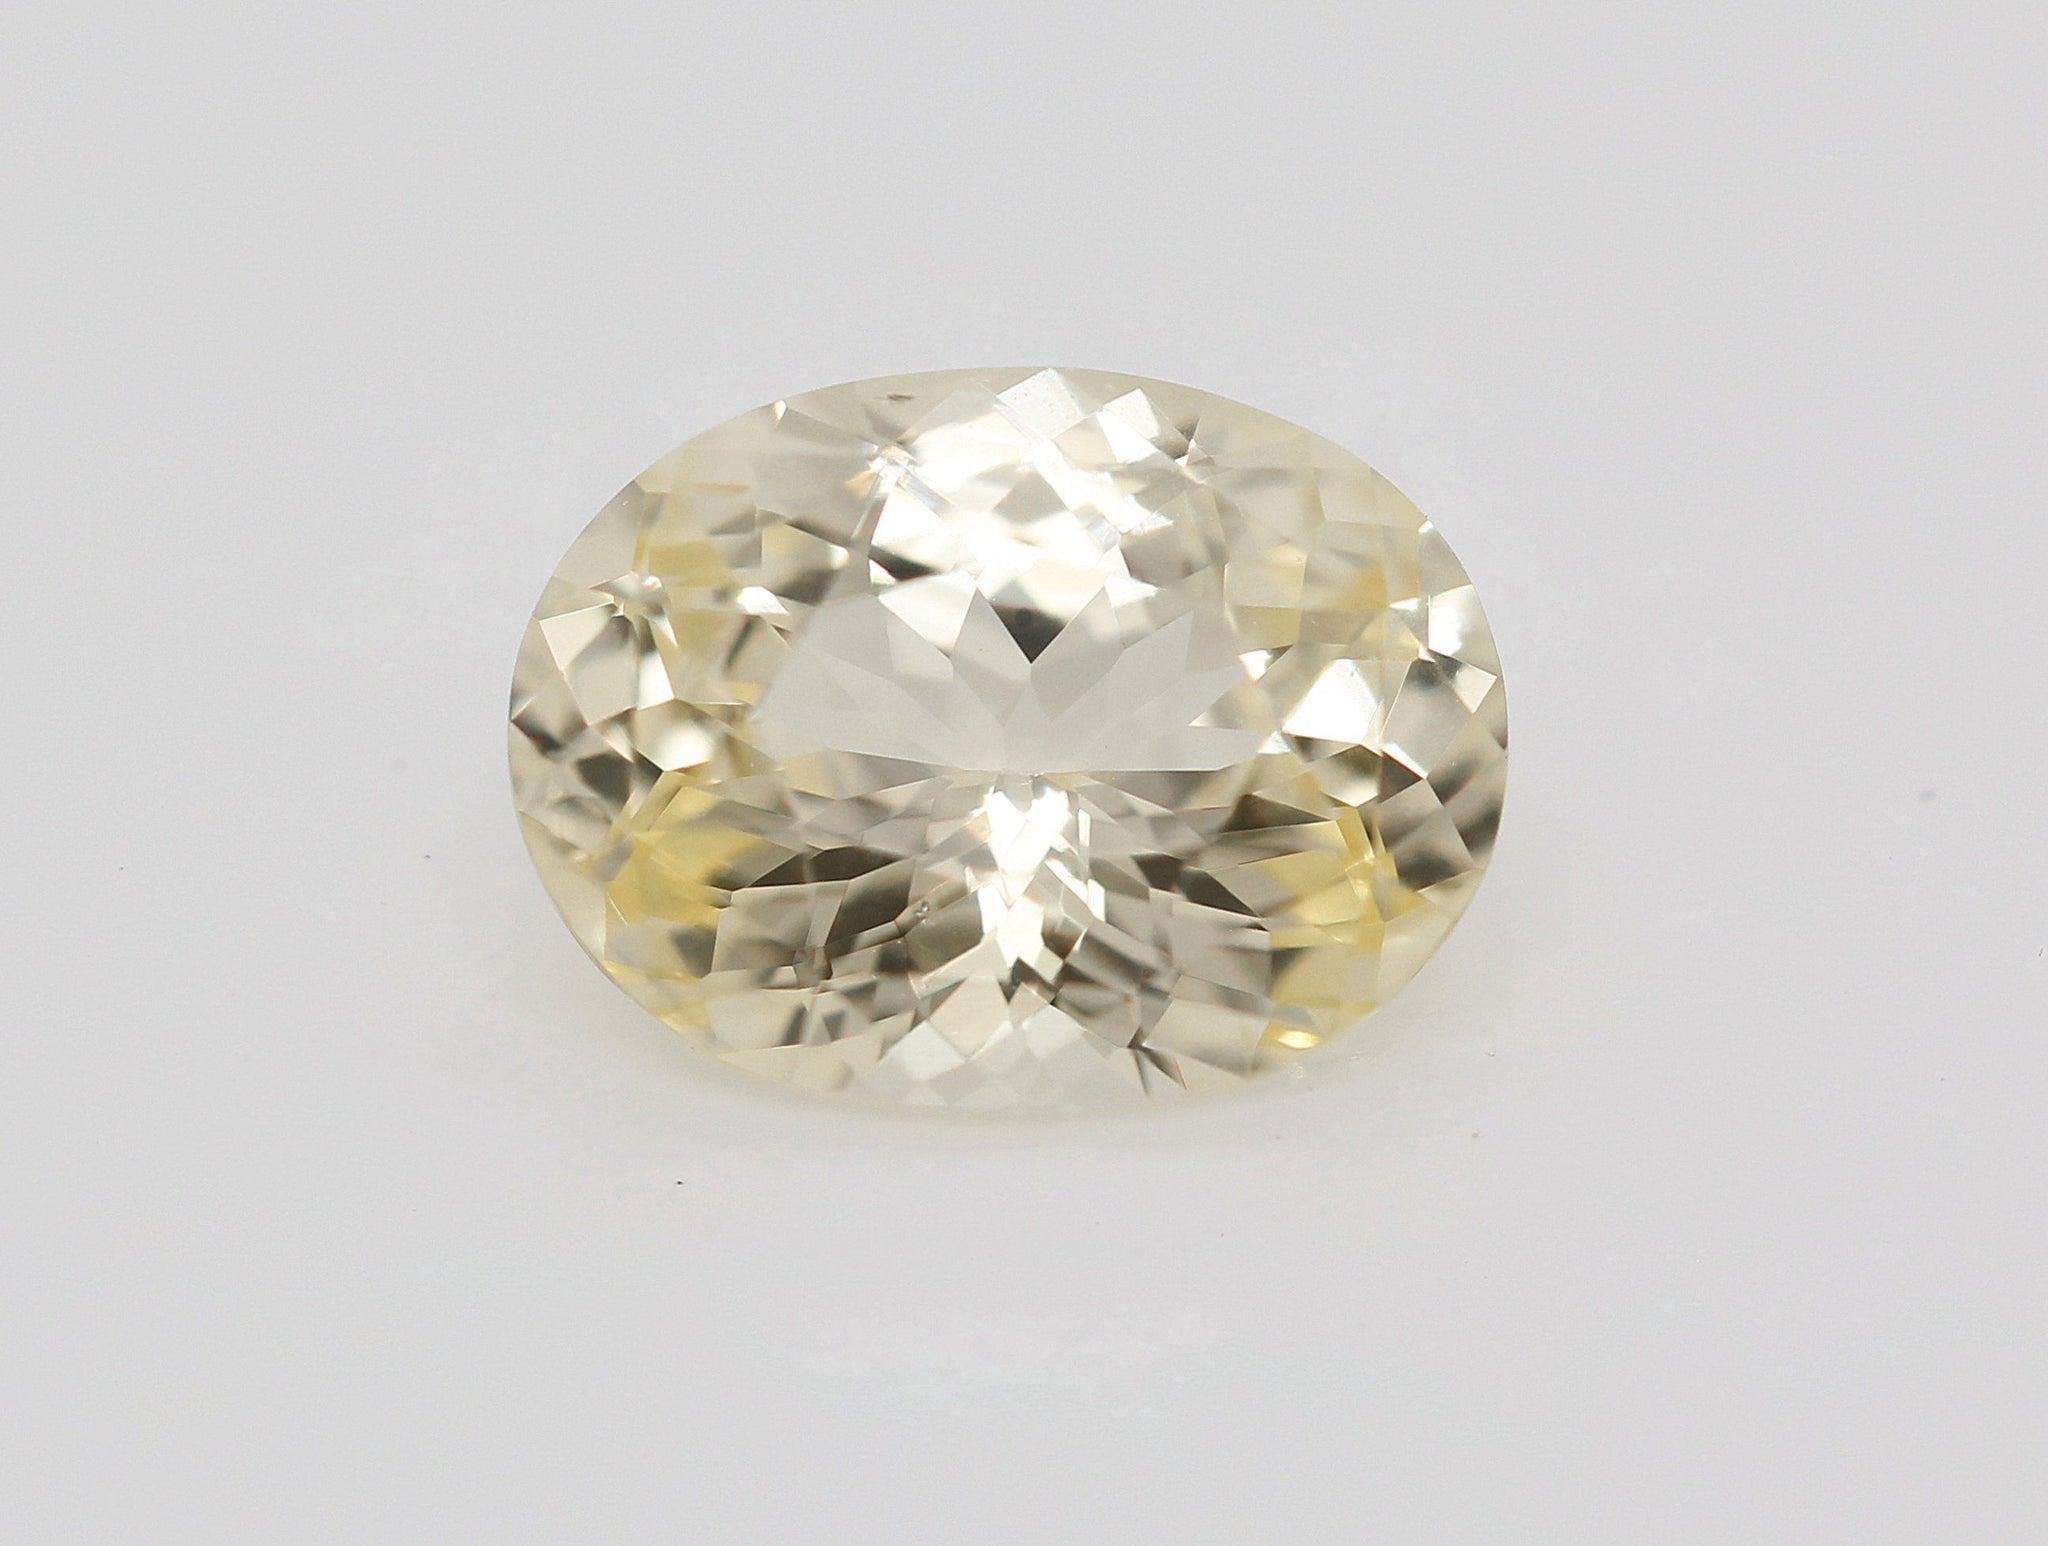 Natural oval light yellow sapphire